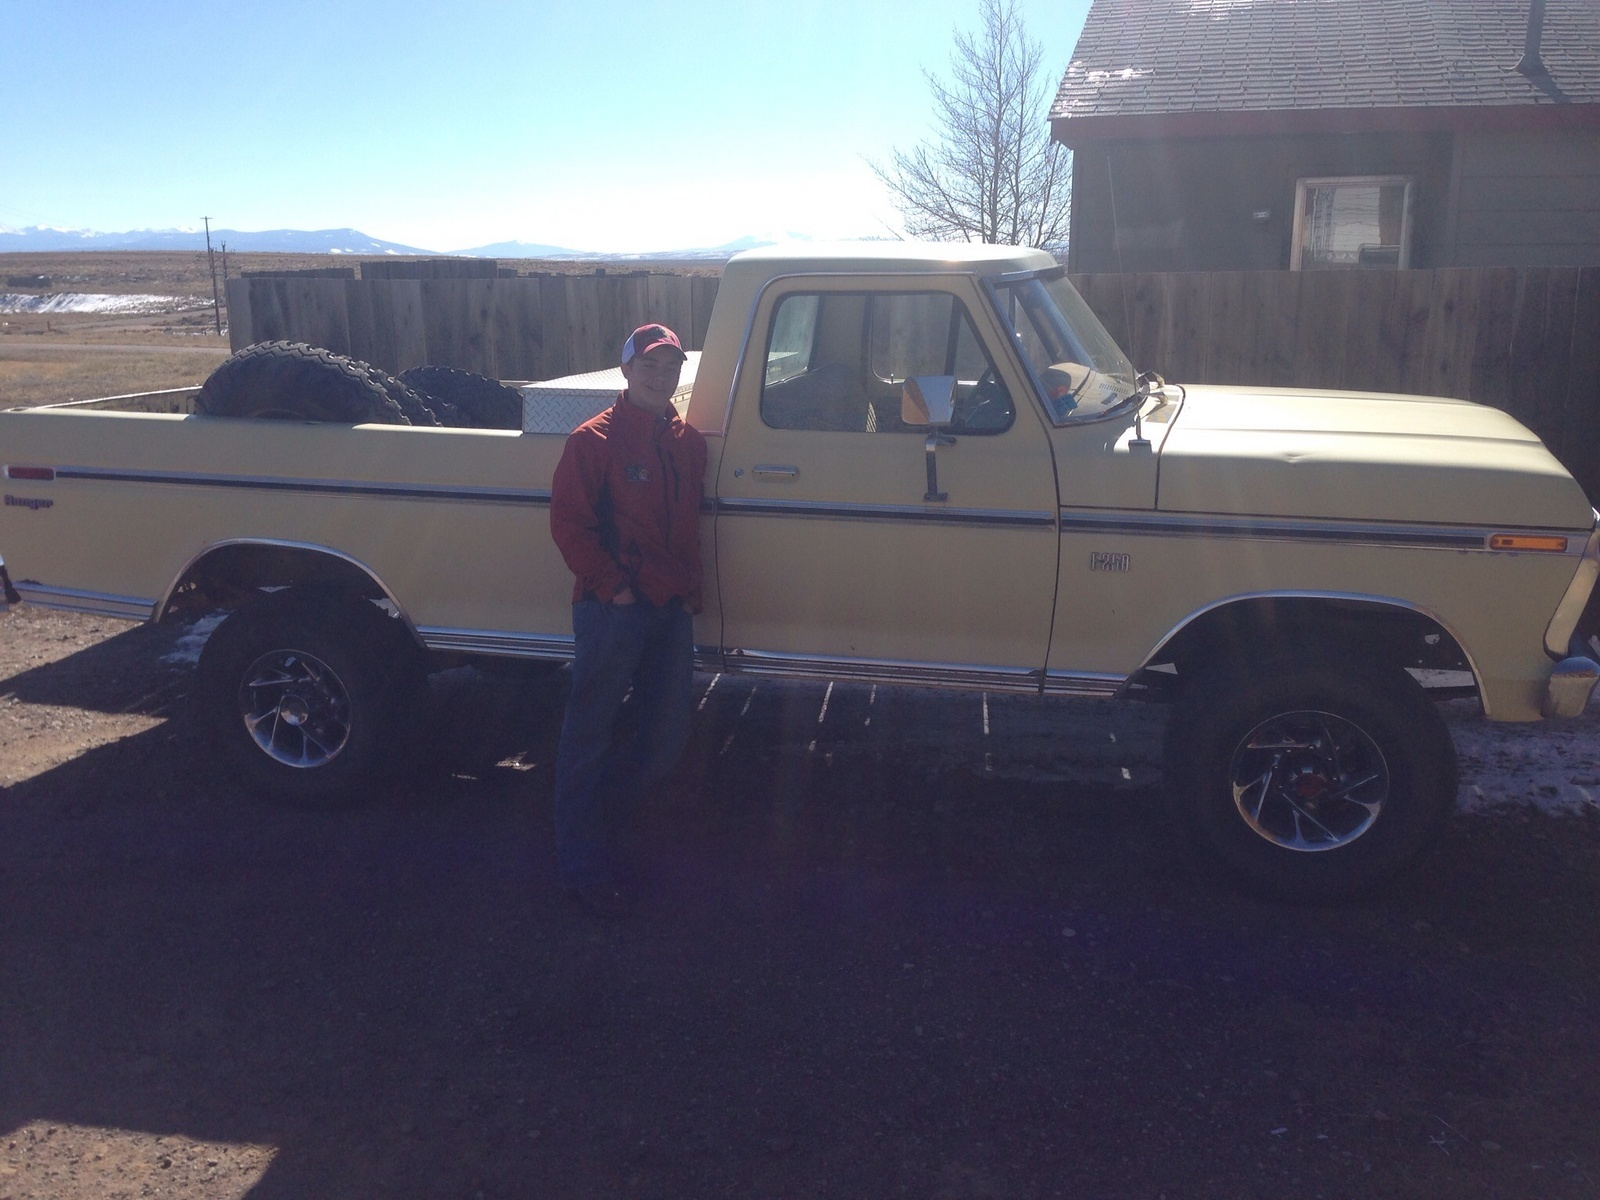 ford f 150 questions ford f150 quit running while i was driving 1977 Ford F-250 Highboy ford f150 quit running while i was driving it s a 73 highboy